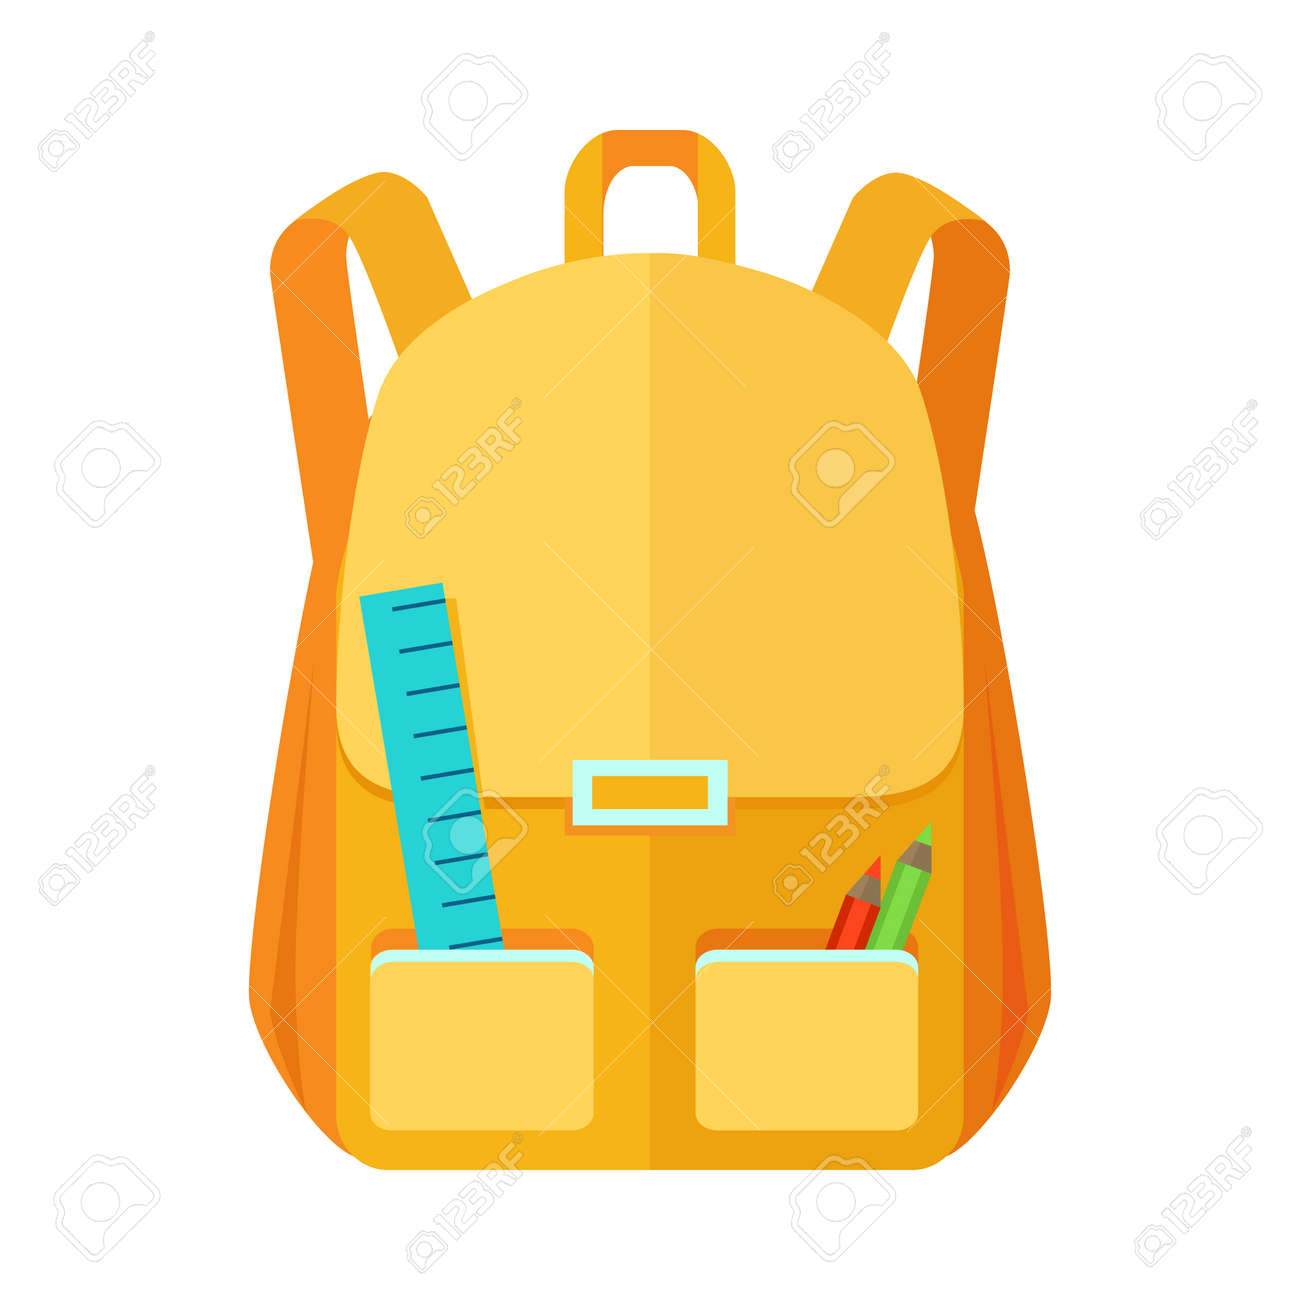 306e0757b7 Backpack schoolbag icon in flat style. Hiking backpack. Kids backpack with  notebook and ruler